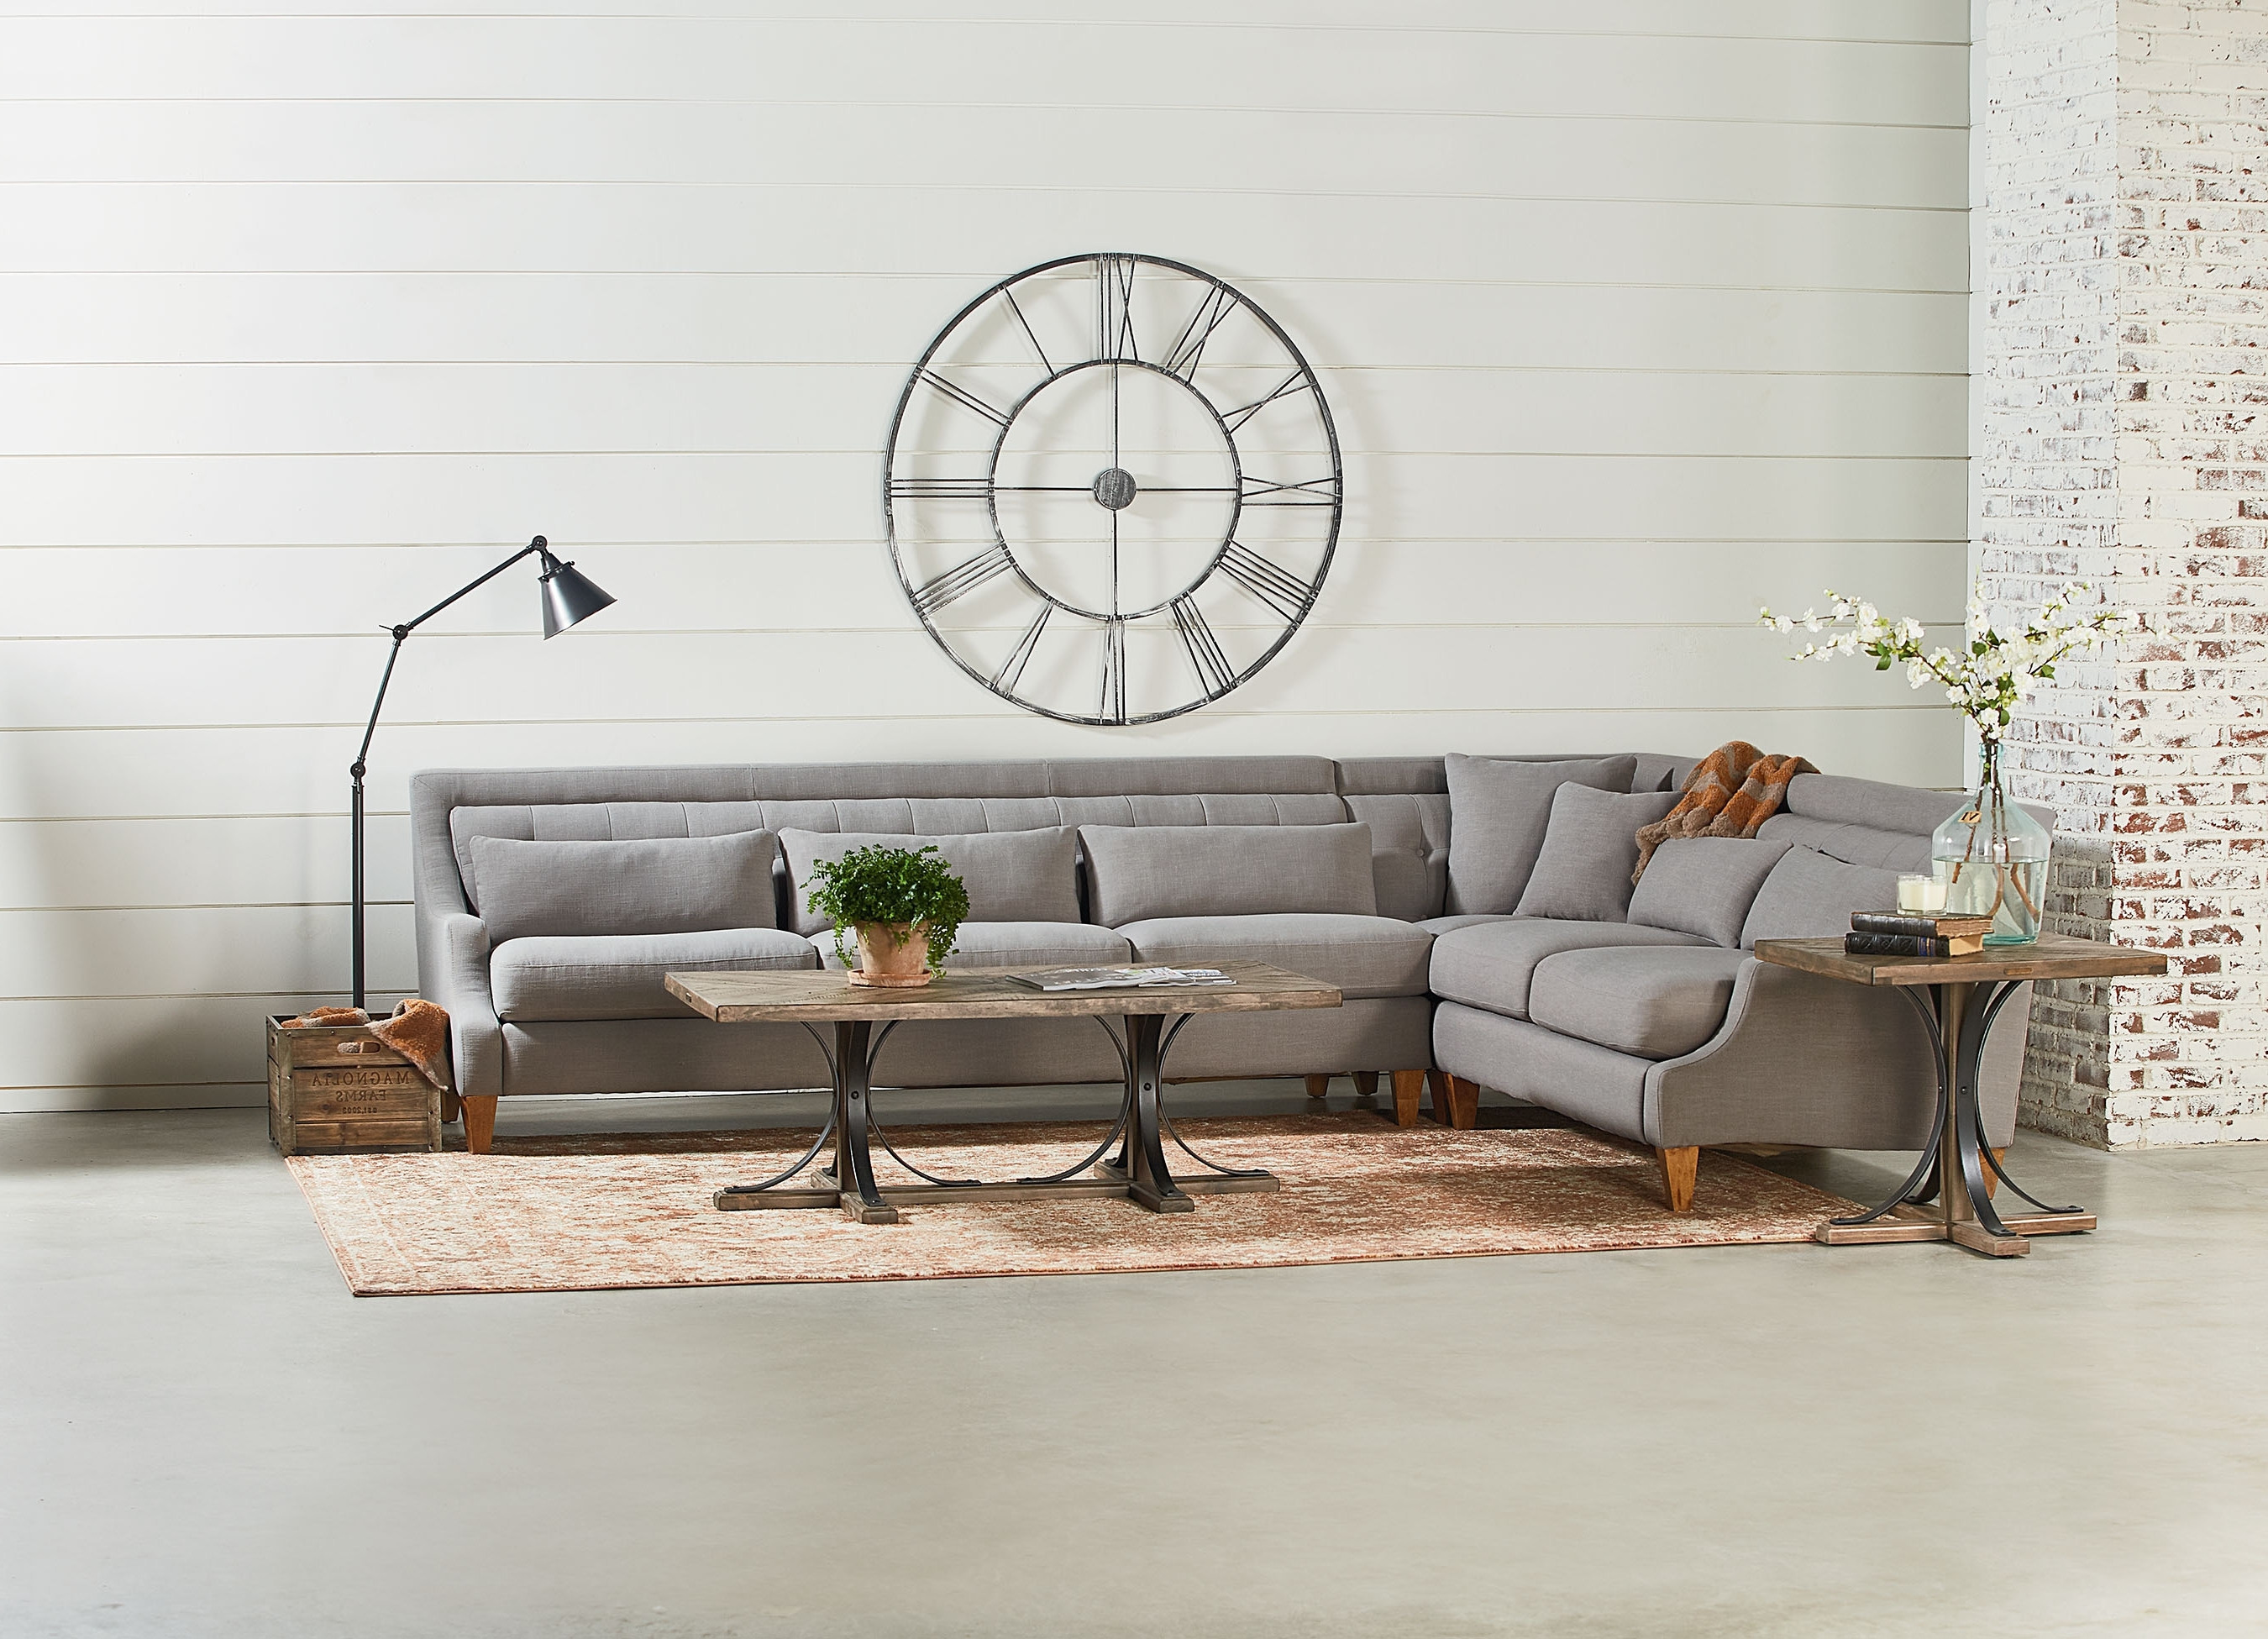 Most Up To Date Iron Trestle Coffee Table – Magnolia Home For Magnolia Home Shop Floor Dining Tables With Iron Trestle (View 19 of 25)